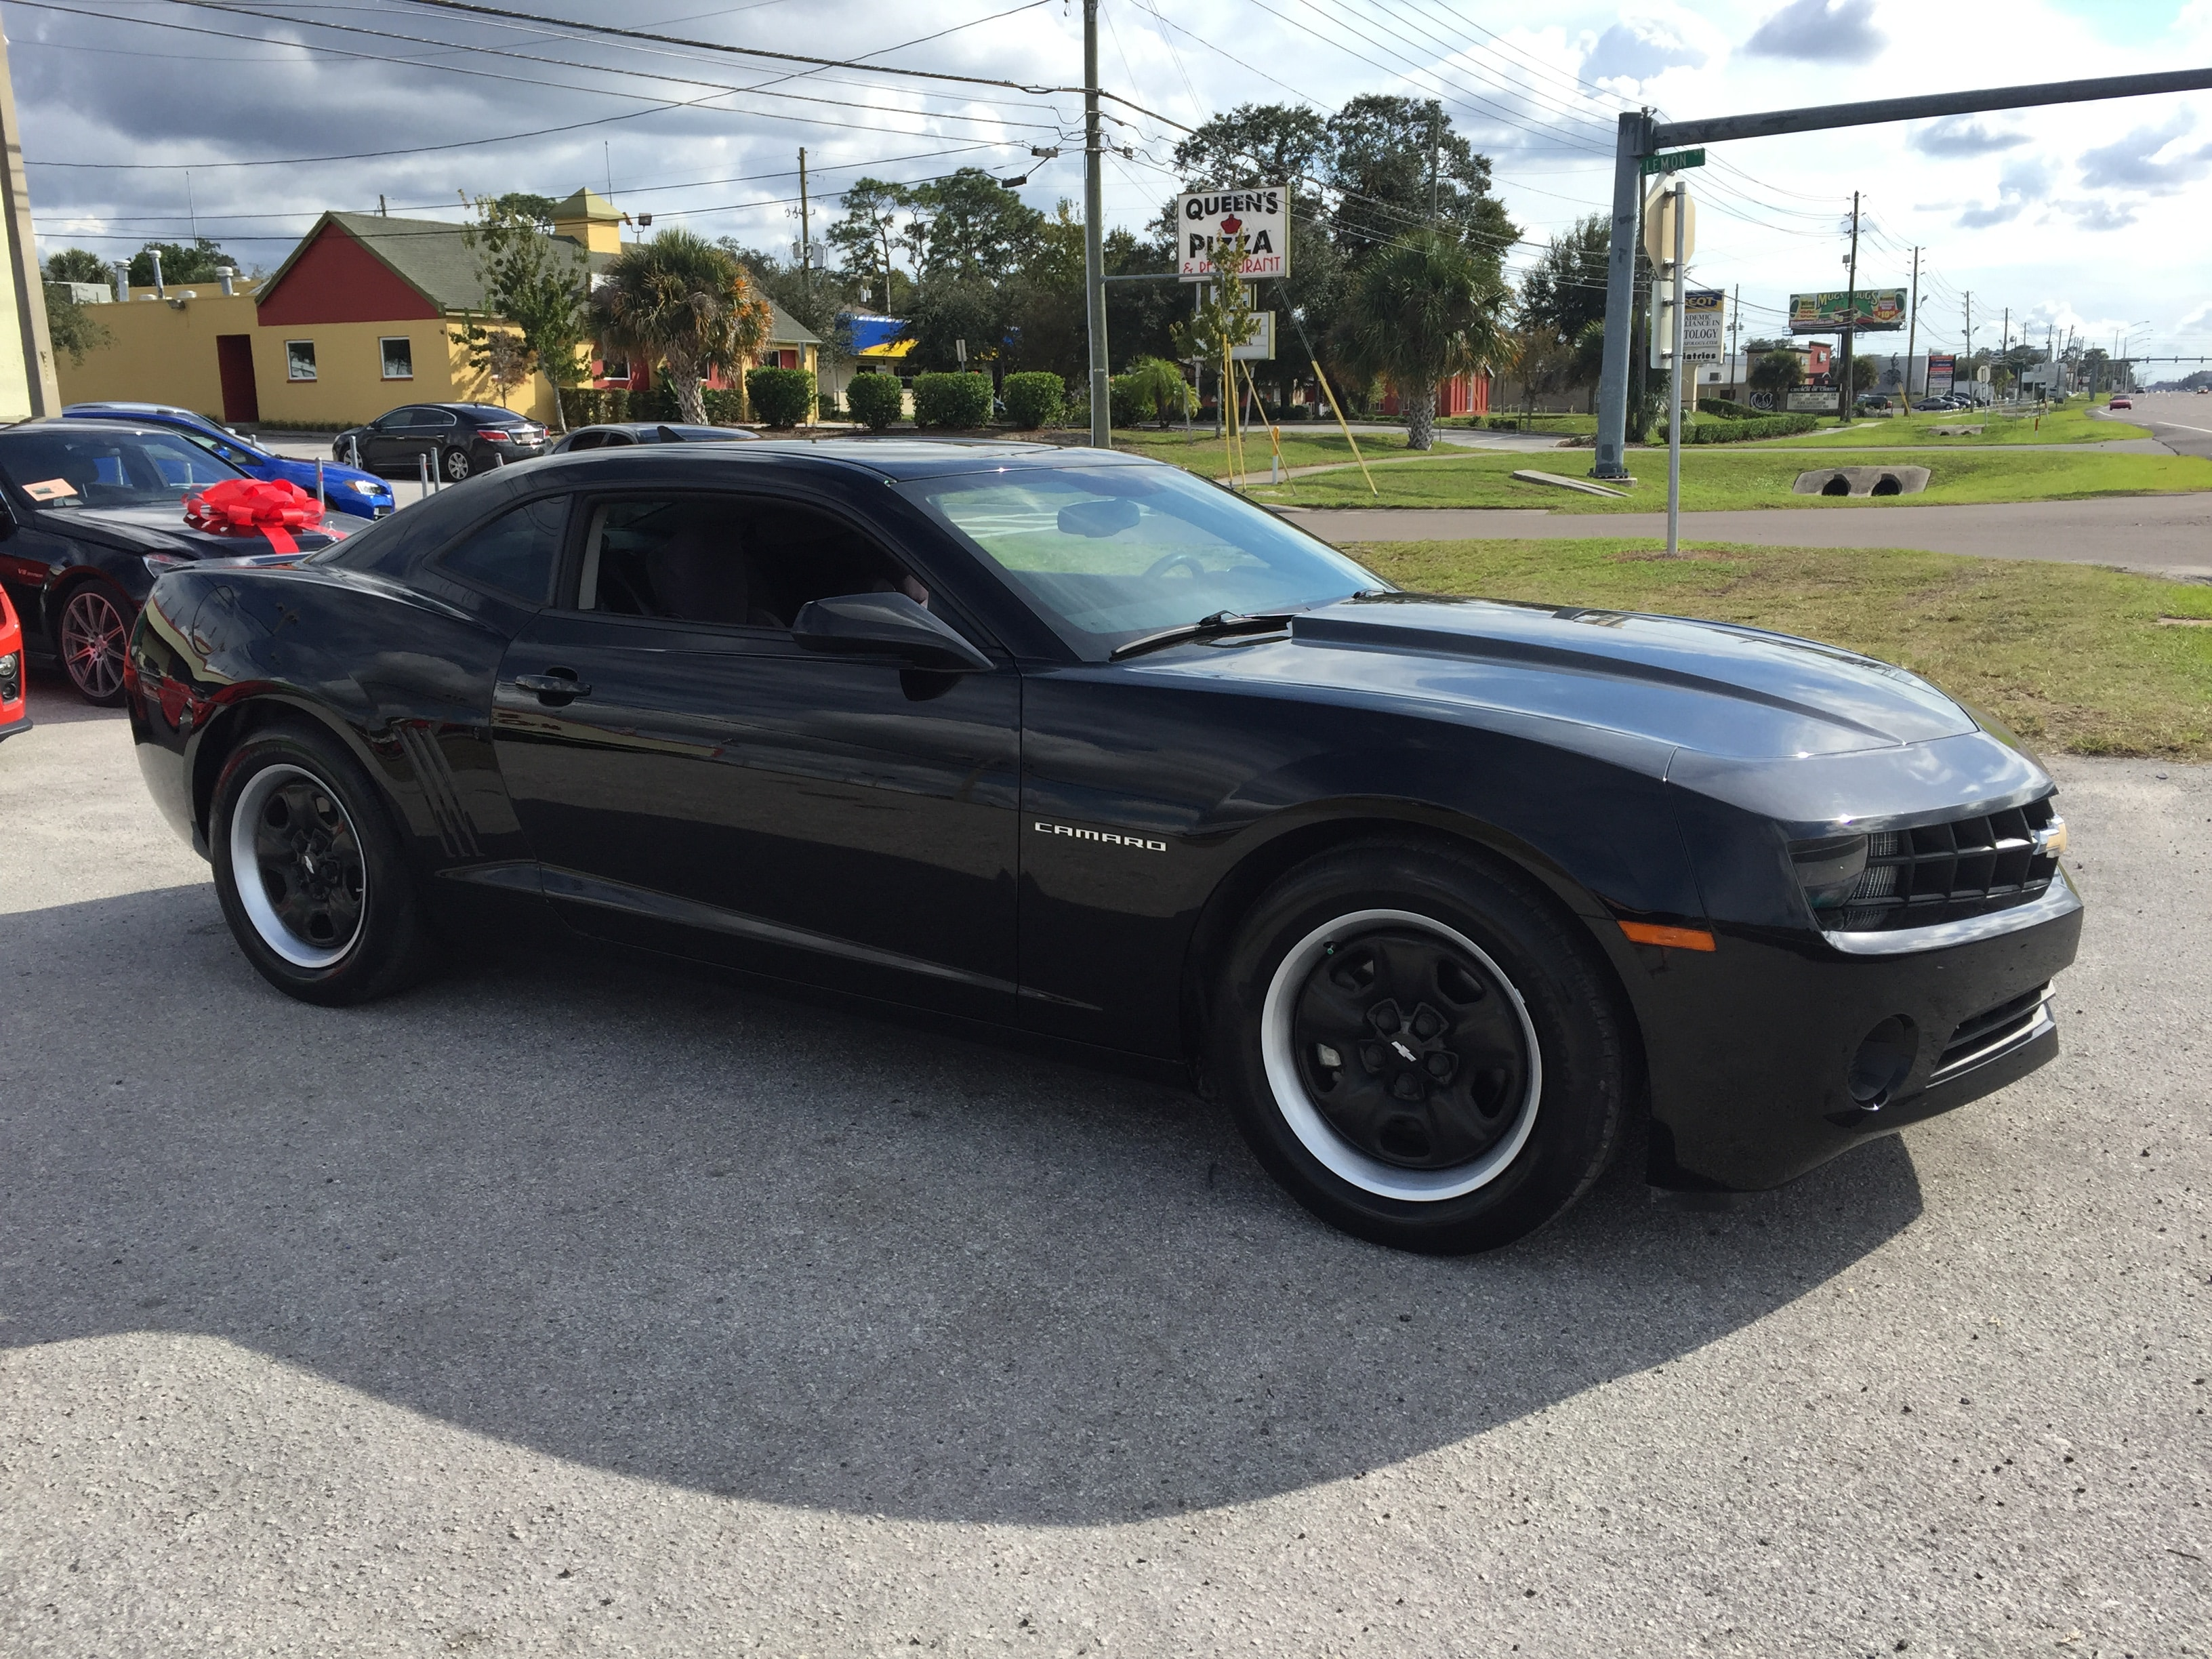 Used Chevrolet Camaro For Sale Tampa Fl Page 2 Cargurus